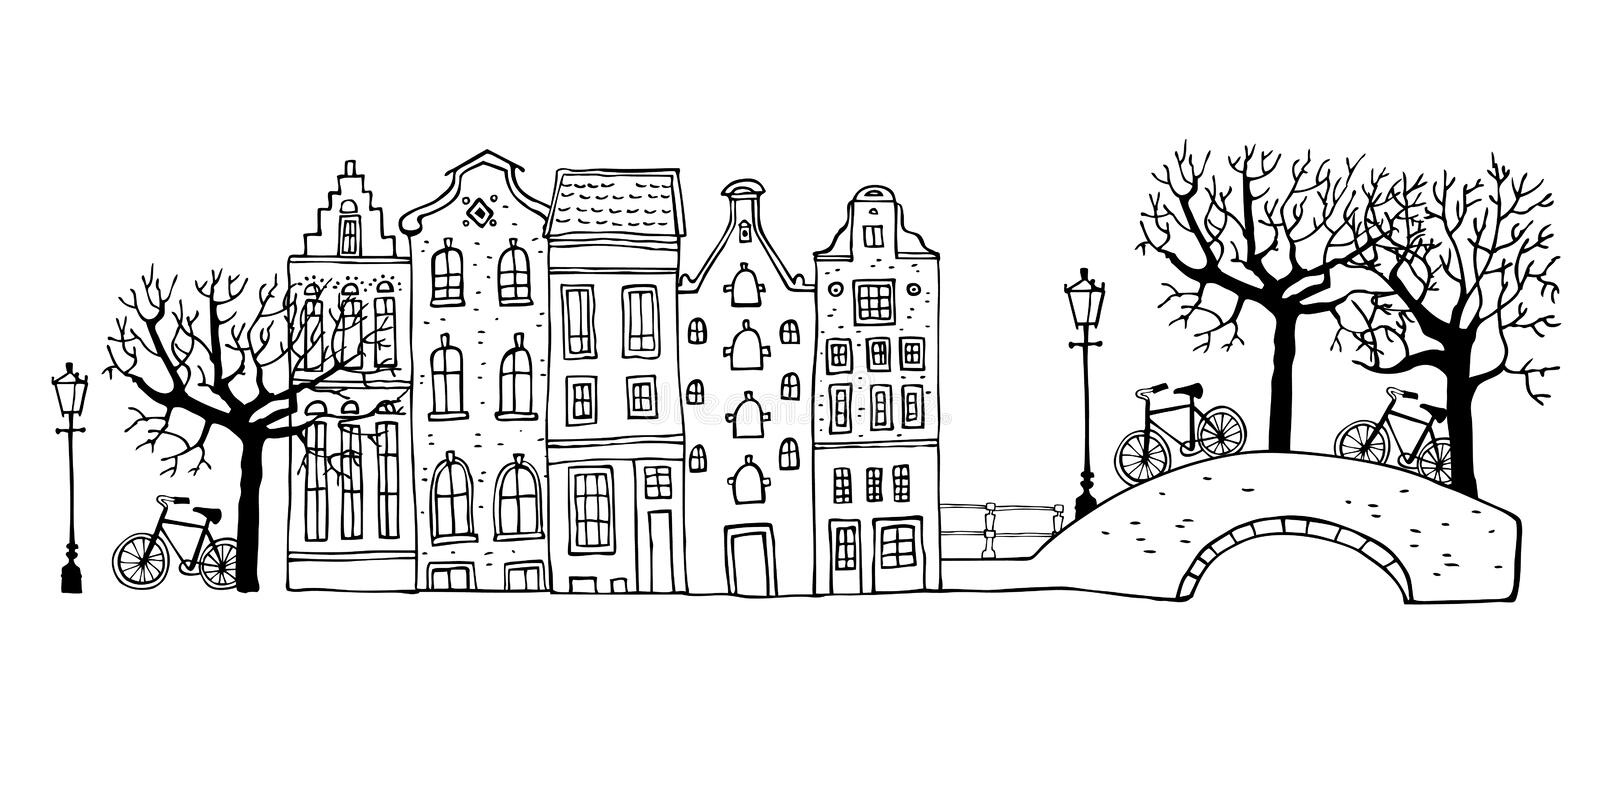 Amsterdam street scene. Vector outline sketch hand drawn illustration. Houses with bridges, lanterns, trees and bicycles royalty free illustration